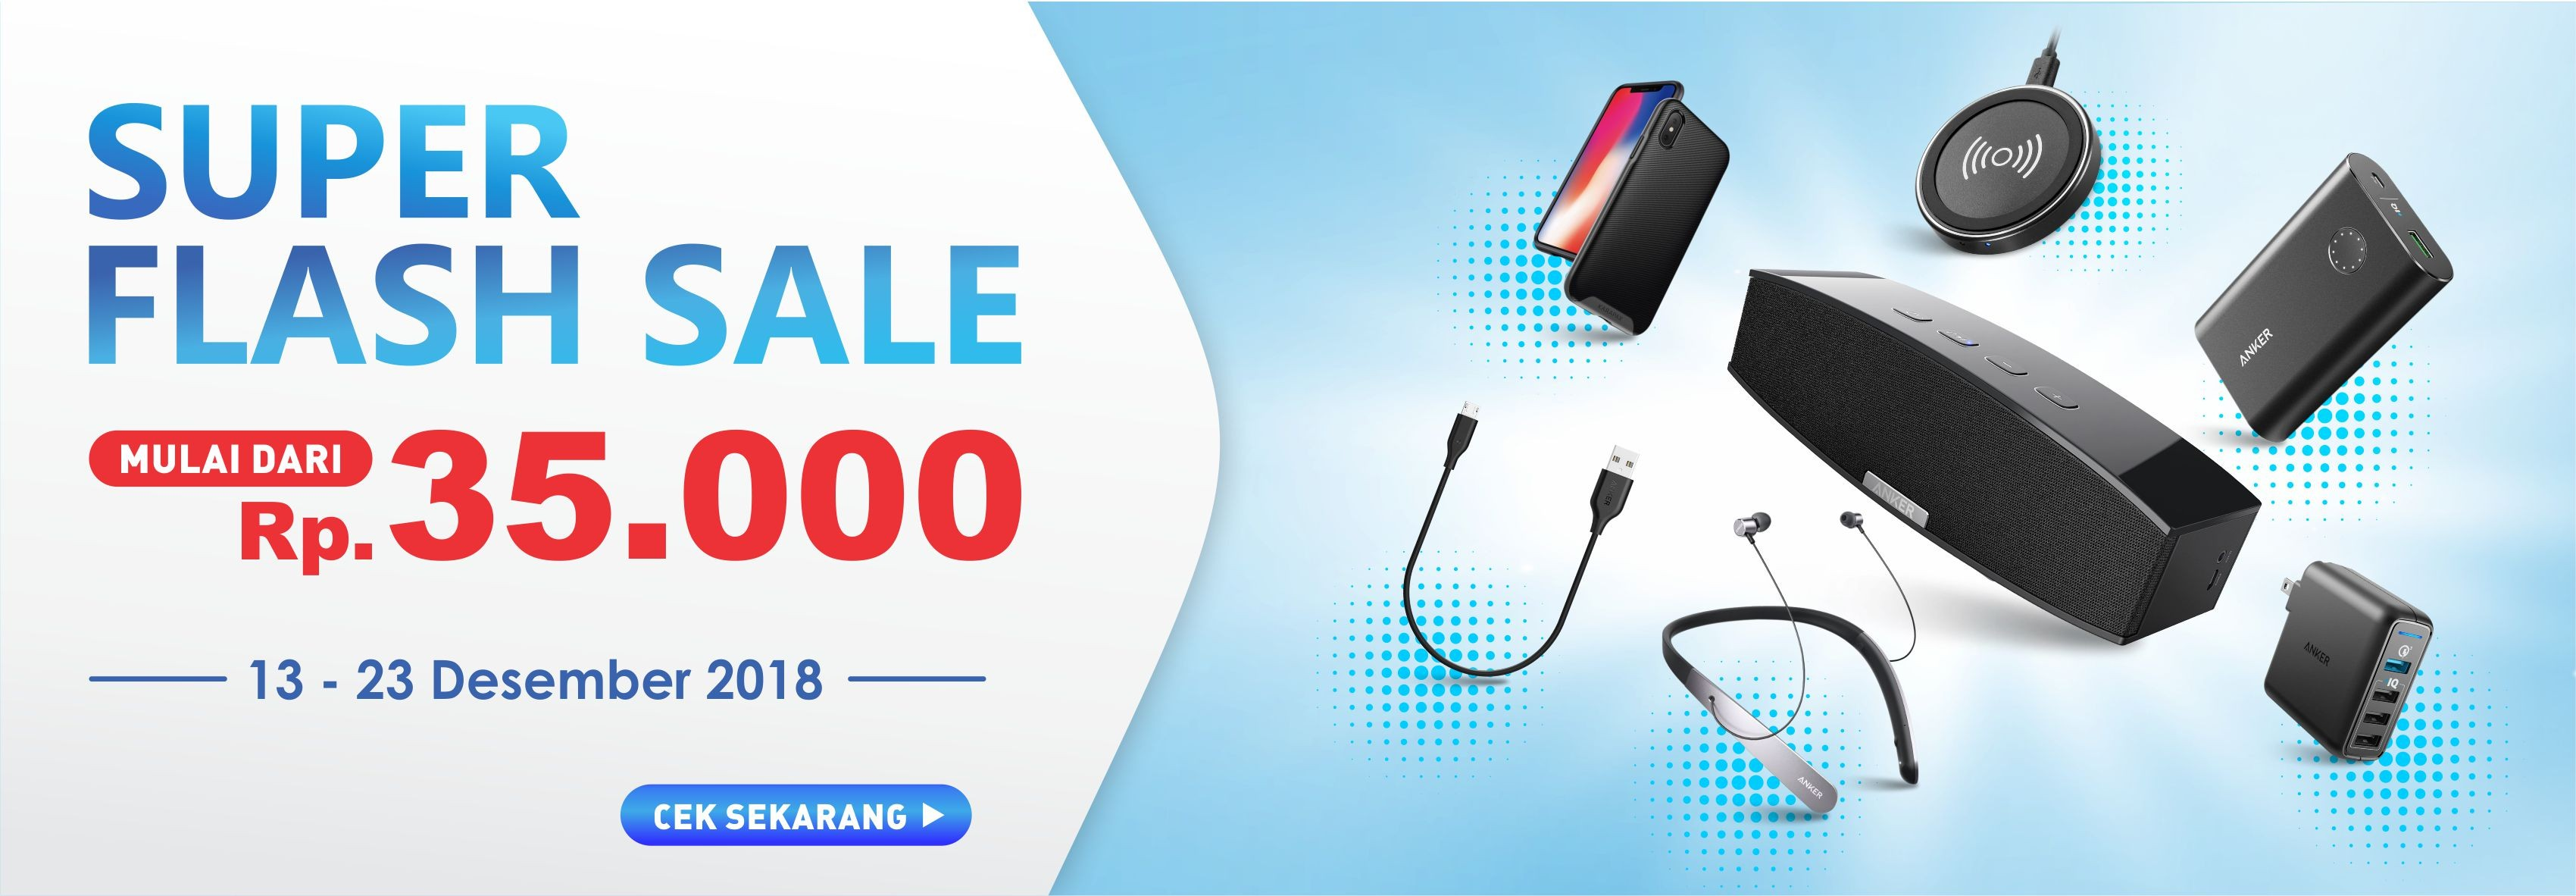 Super Flashsale Anker